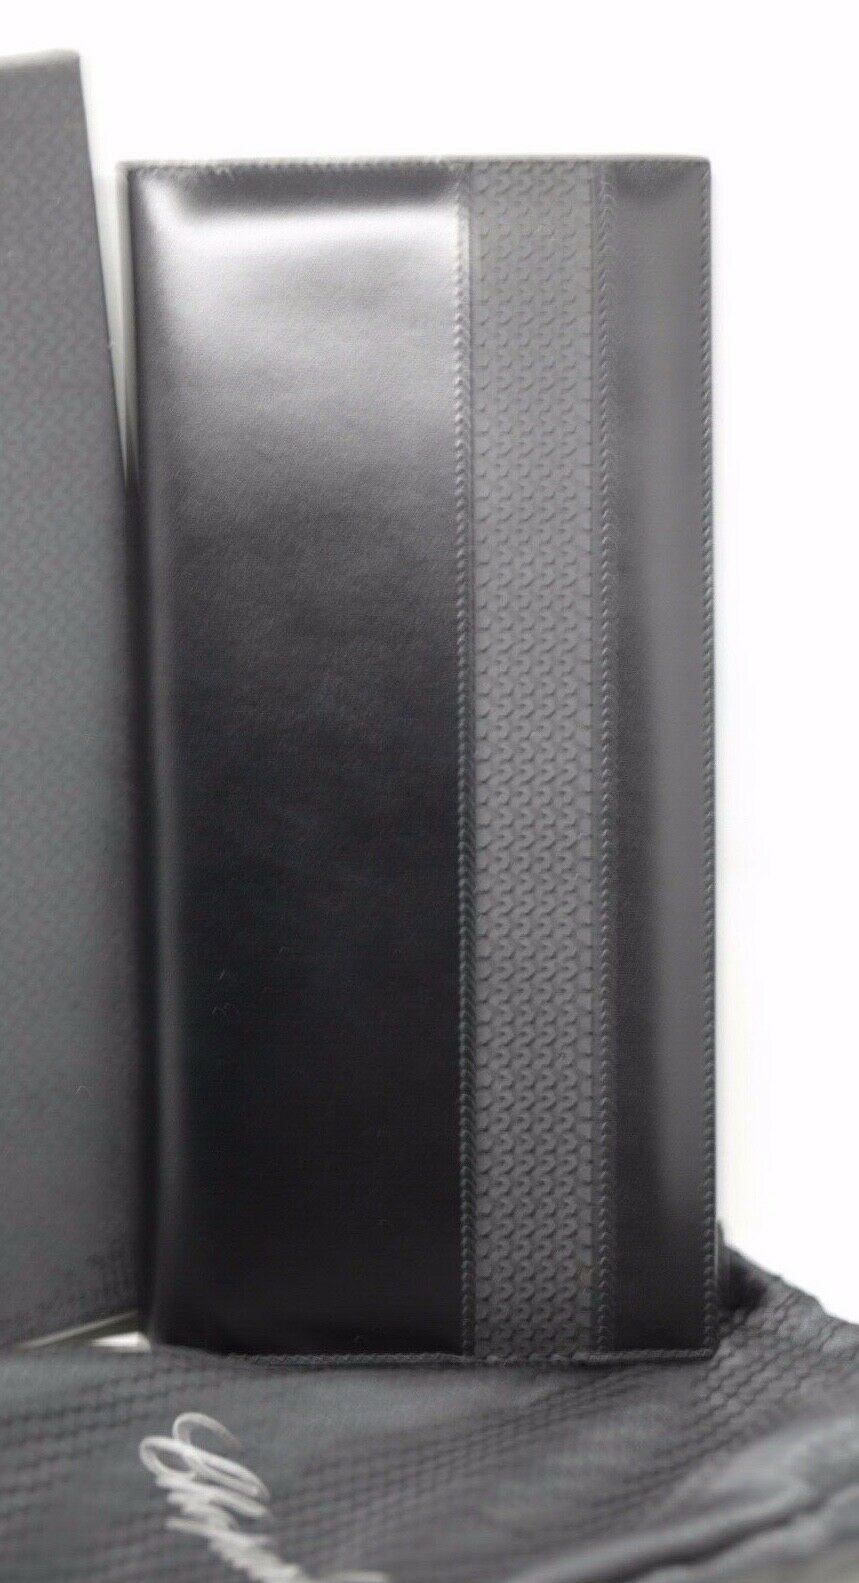 Chopard 95 7056 Black Leather Rubber 72 Business Card Holder Long 475x10 123703193183 3